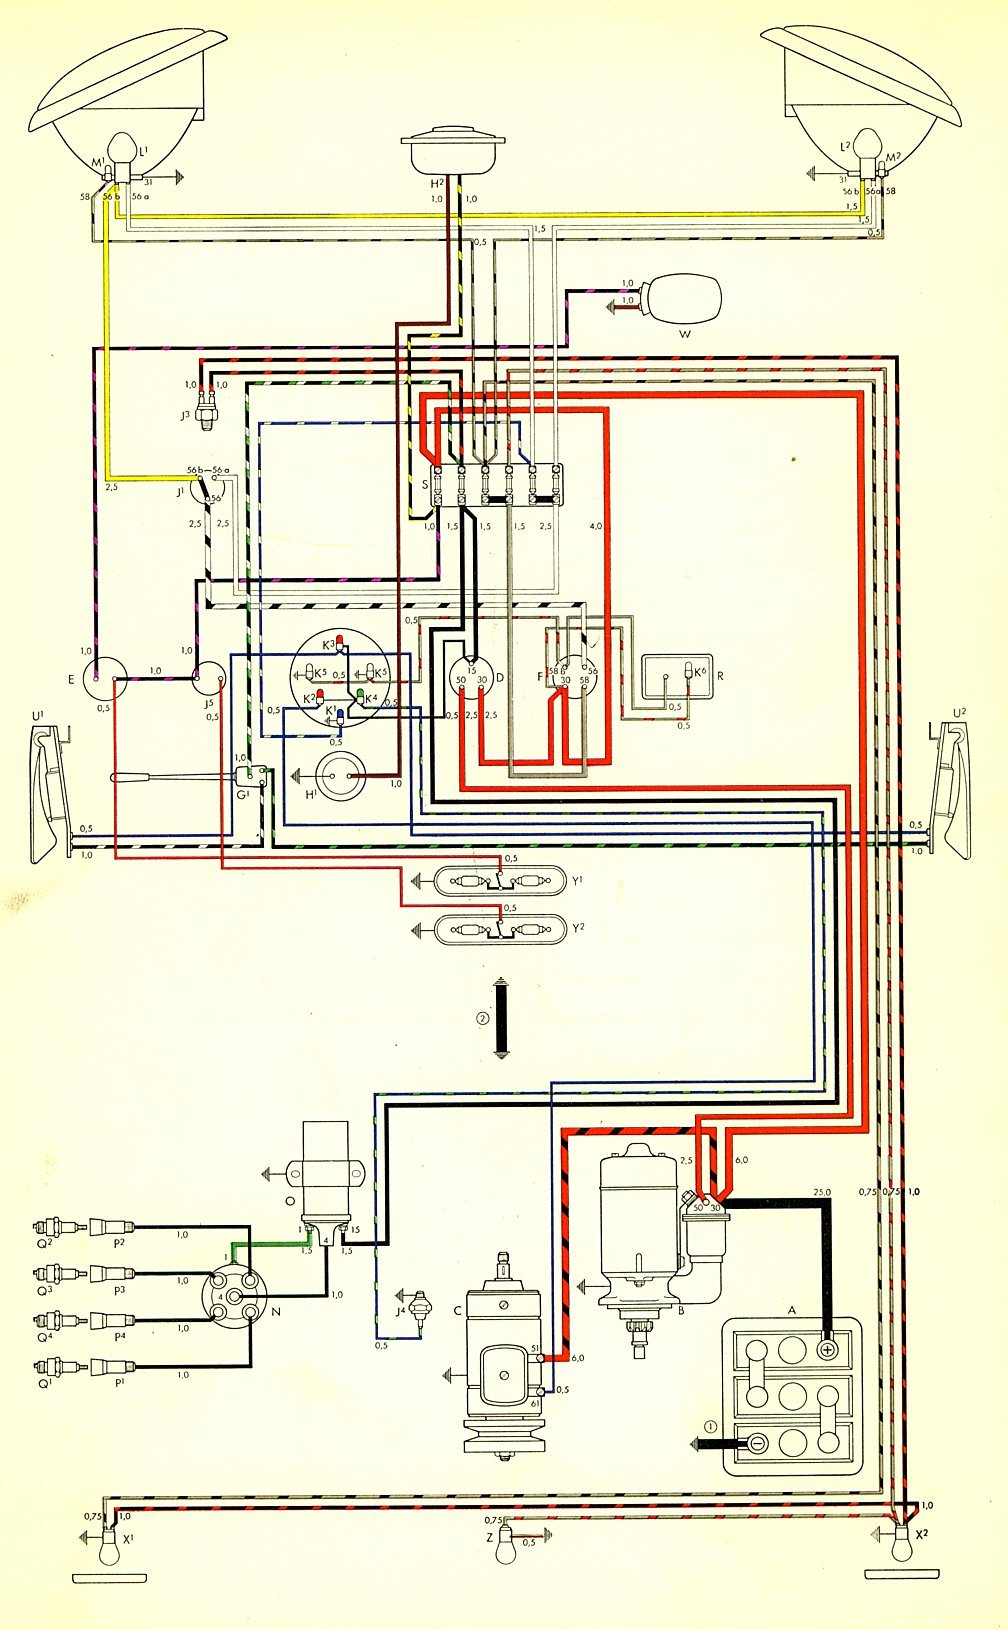 1973 Vw Bus Wiring Diagram The Portal And Forum Of 69 Volkswagen Bug Voltage Regulator Thesamba Com Type 2 Diagrams Rh 1969 Beetle